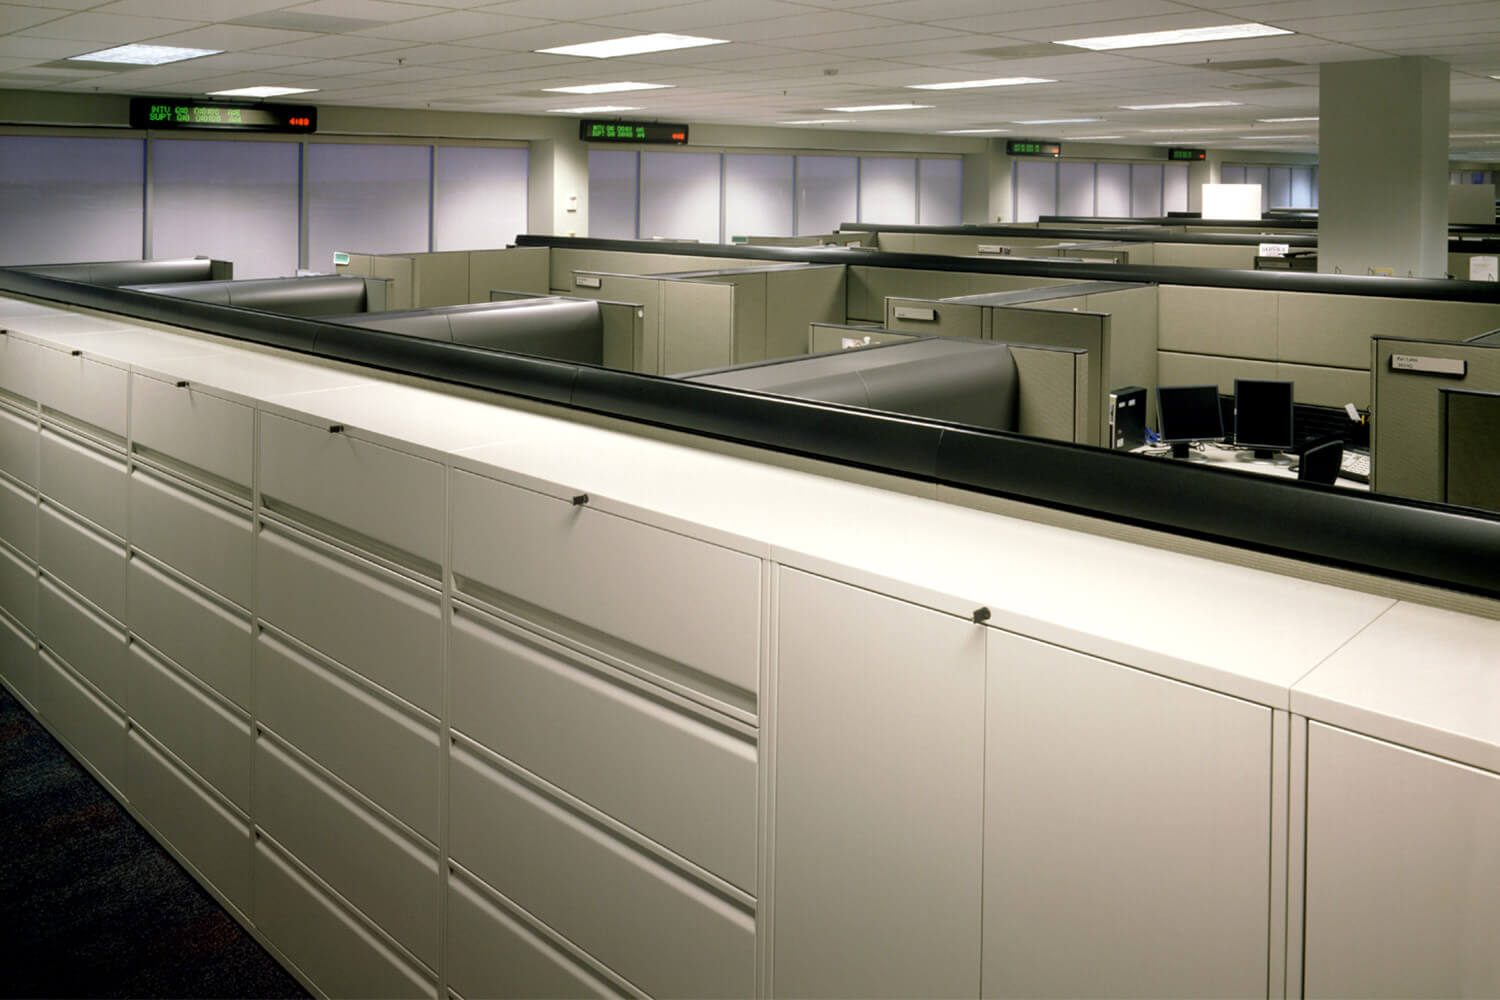 Protective Life Insurance Company cubicles